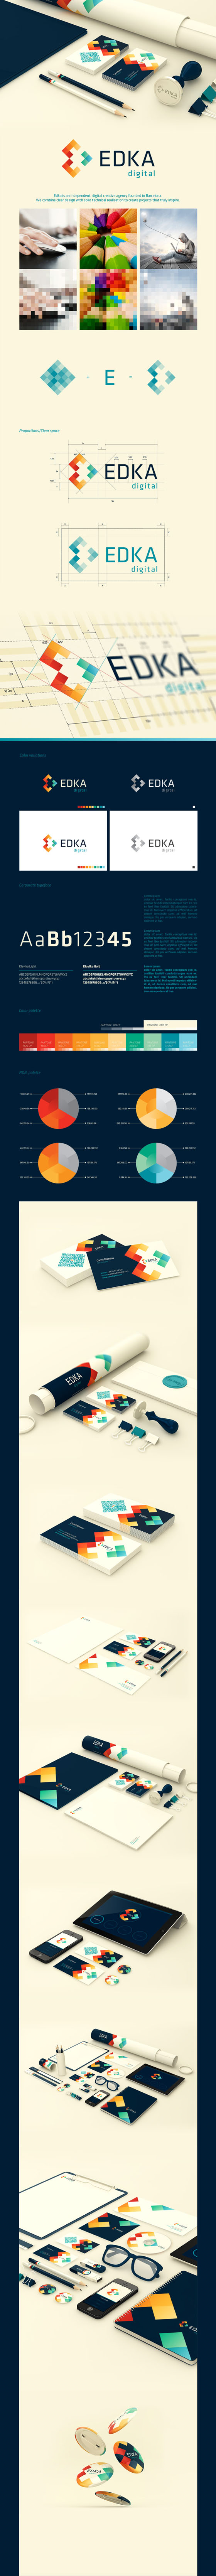 Visual Identity and Branding Series  Edka Digital